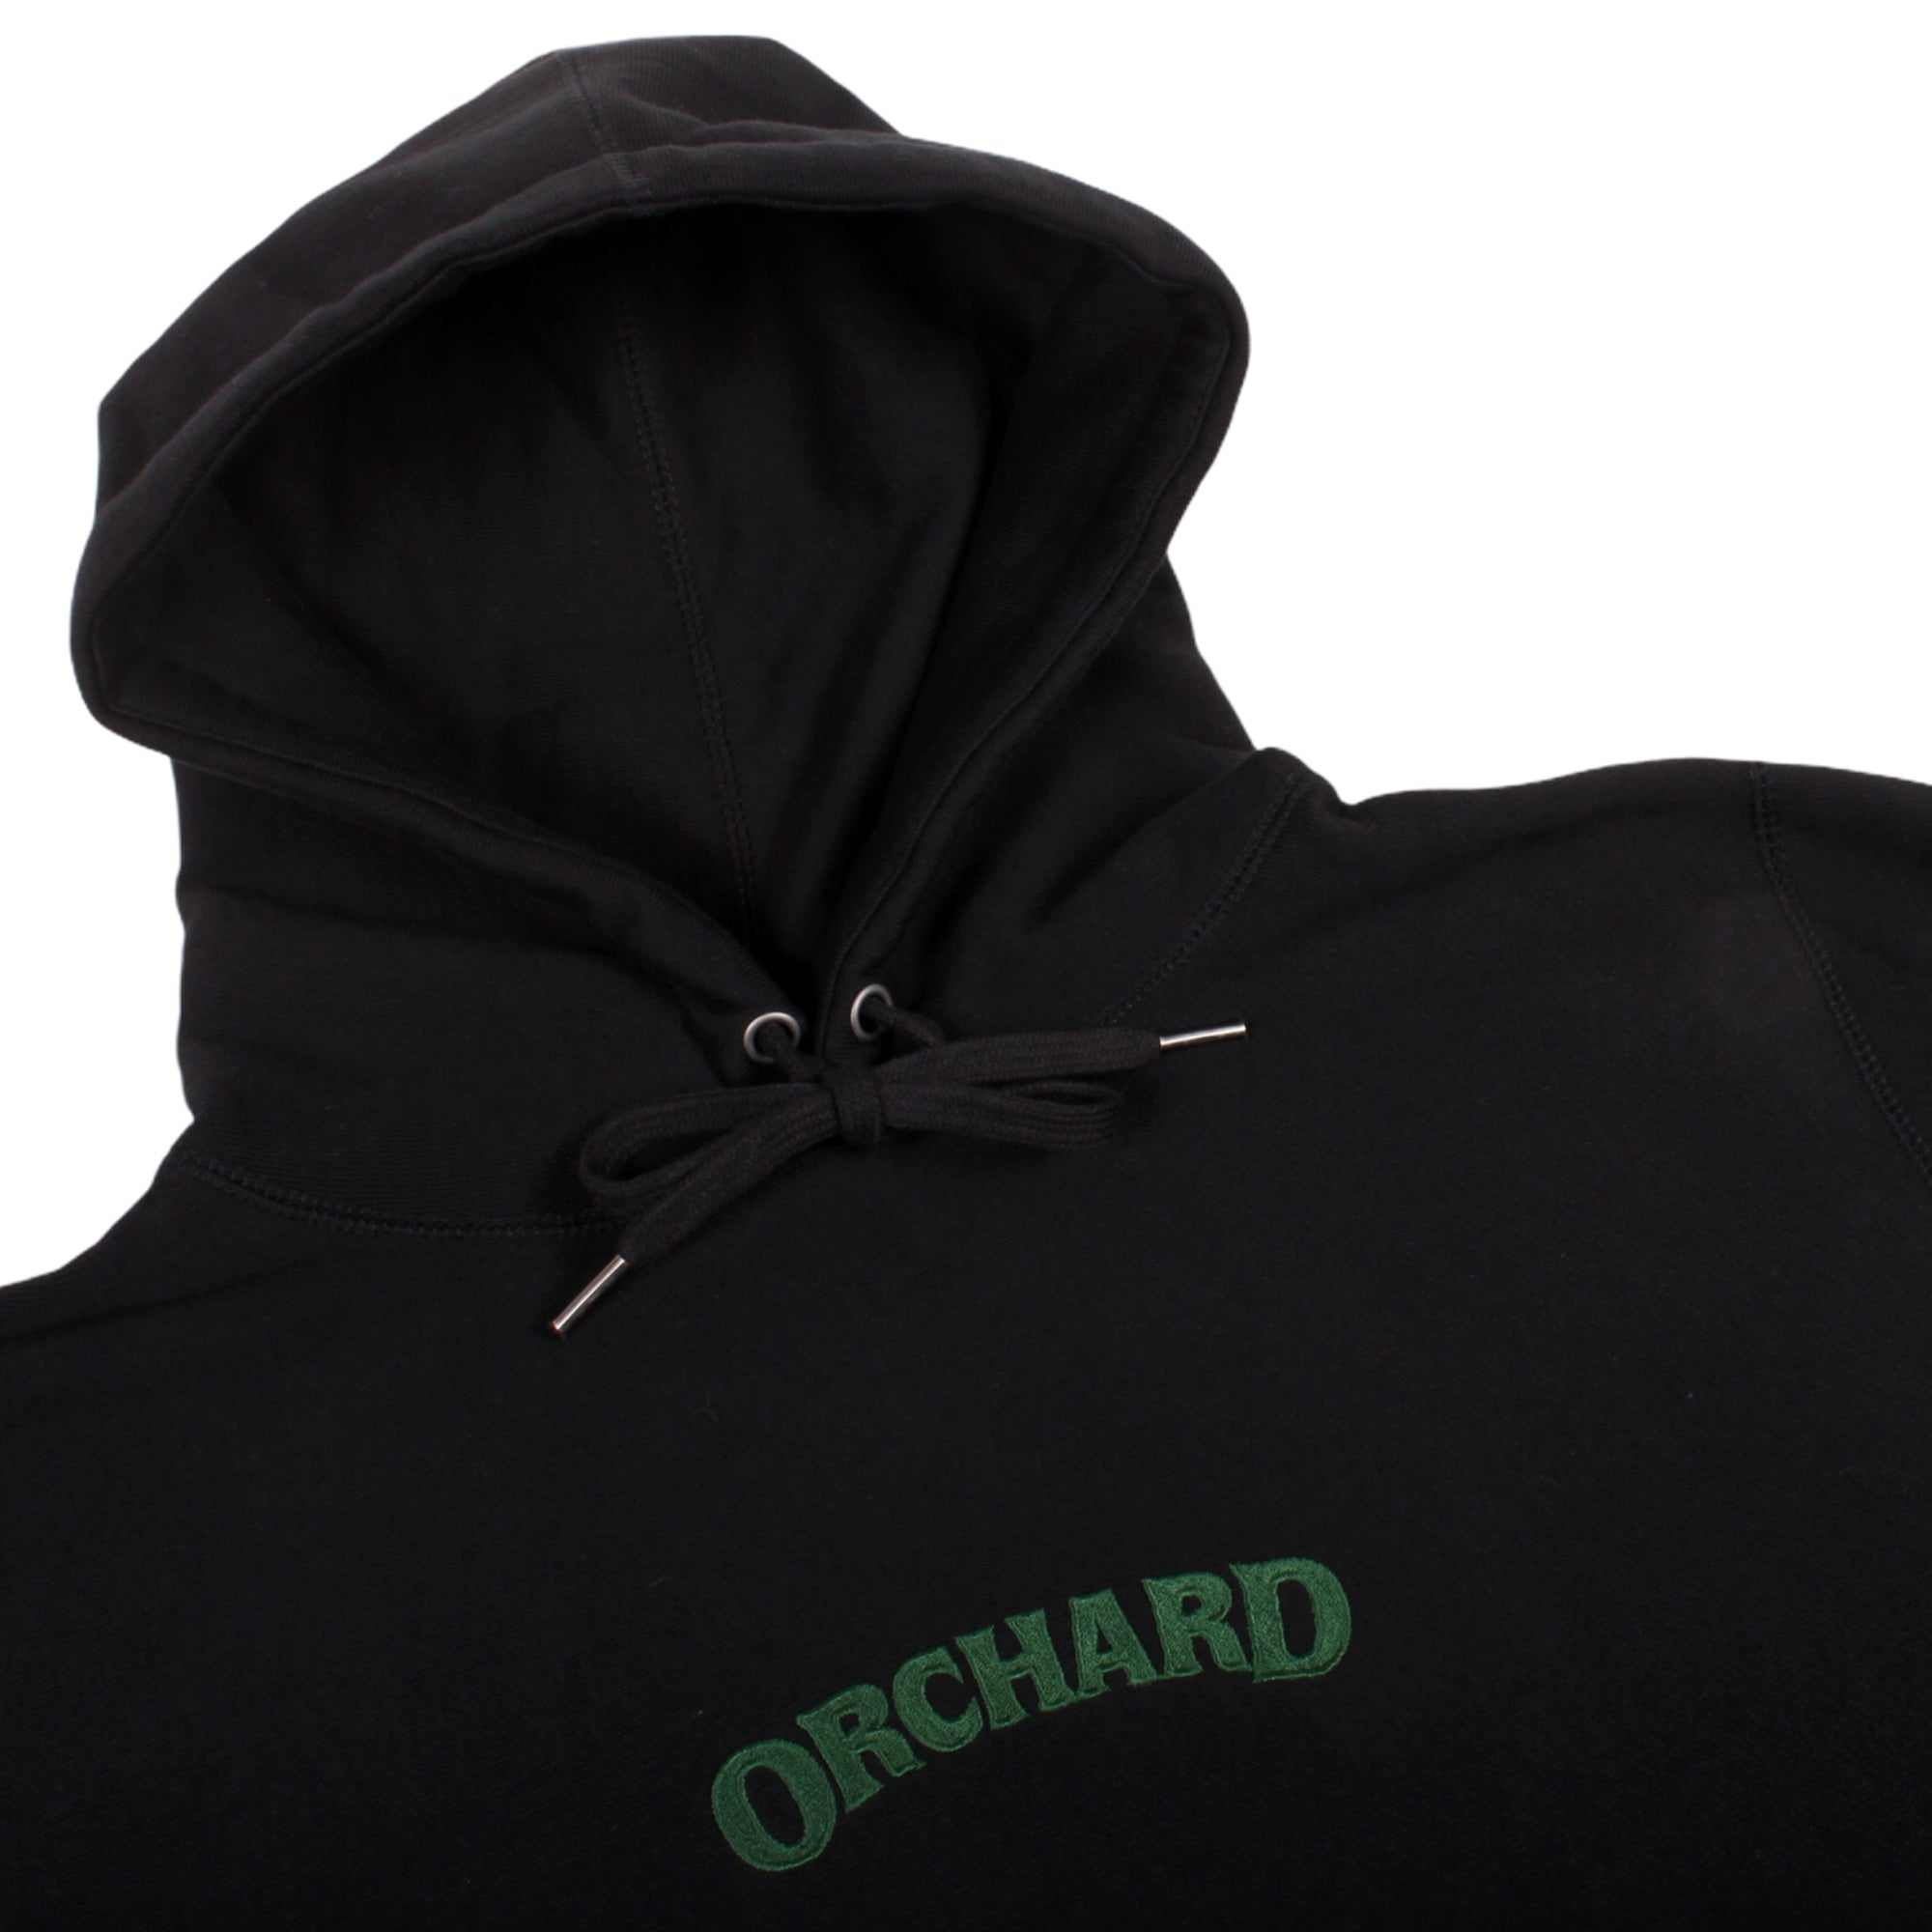 Orchard Cross Weave Text Logo Hoodie Black/Green